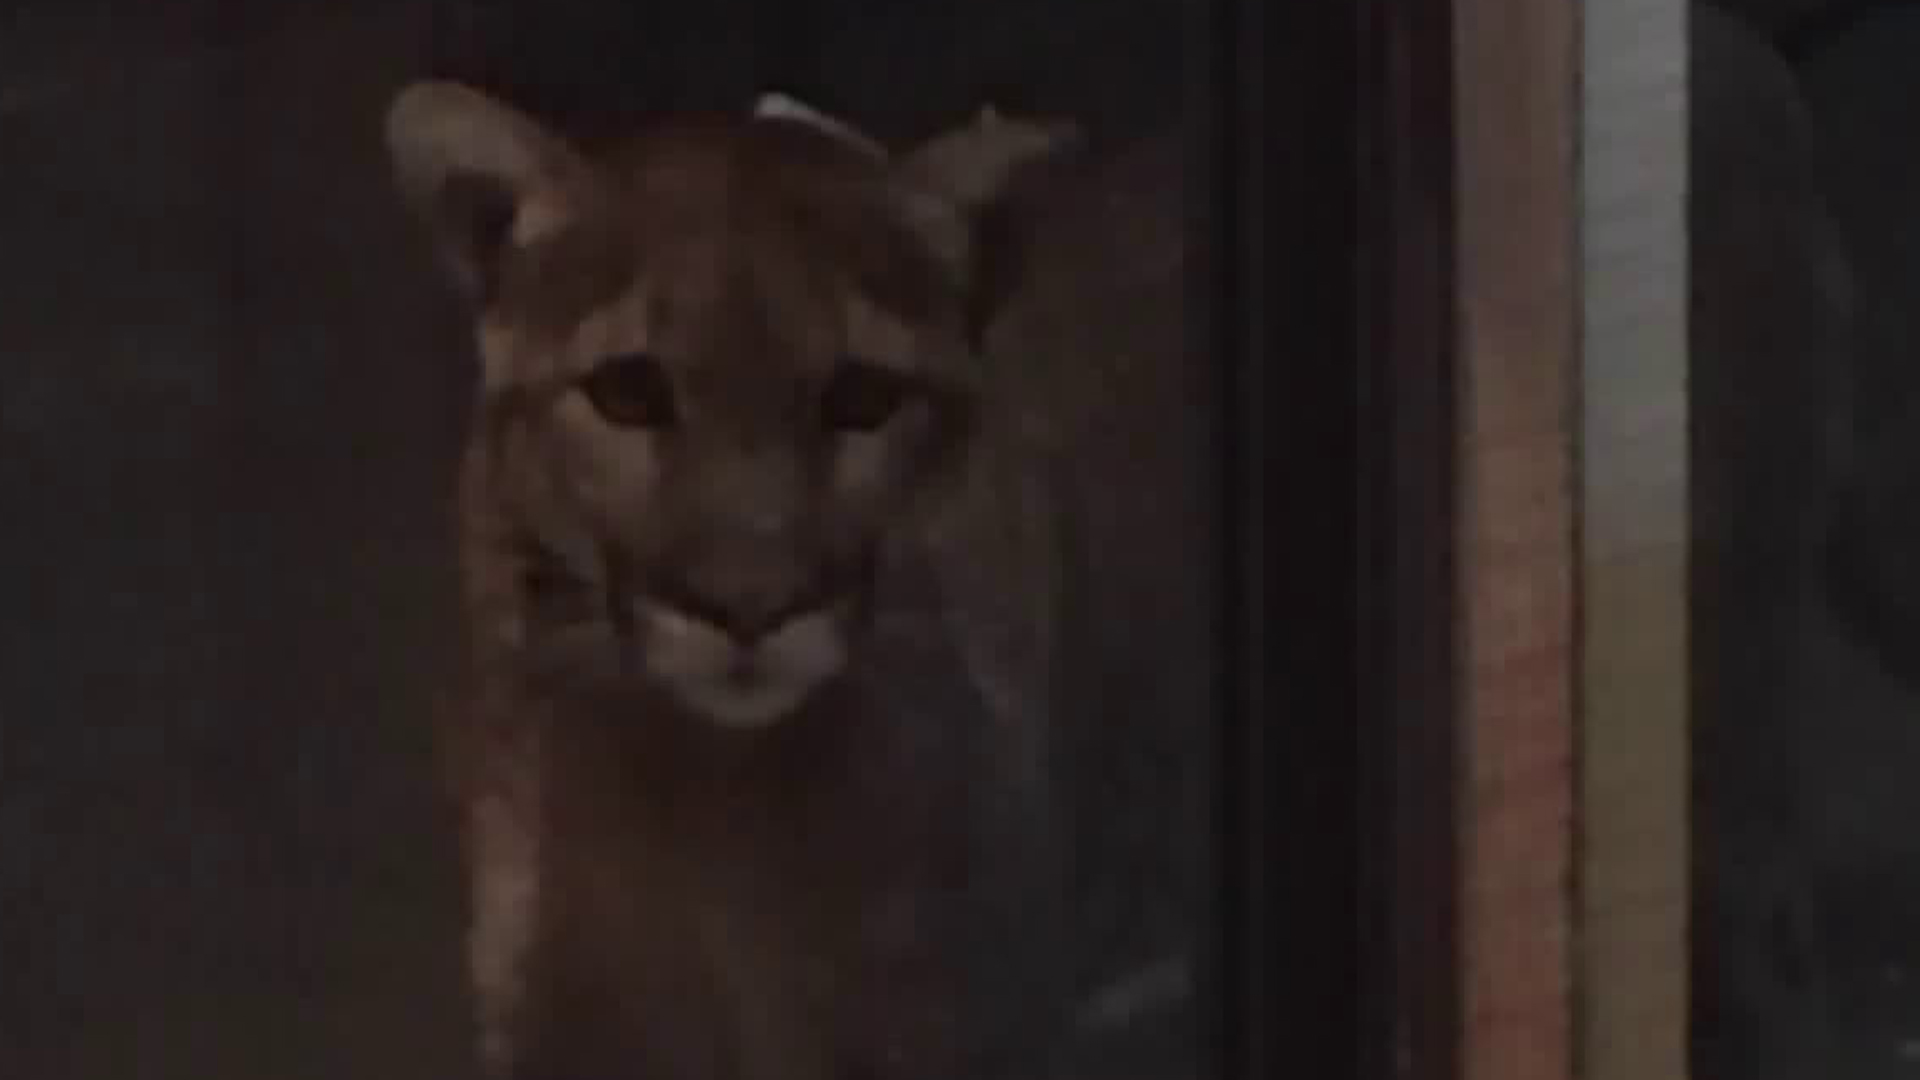 A Westlake Village family provided this close-up photo of a mountain lion who peered through their window in Feb. 2018.